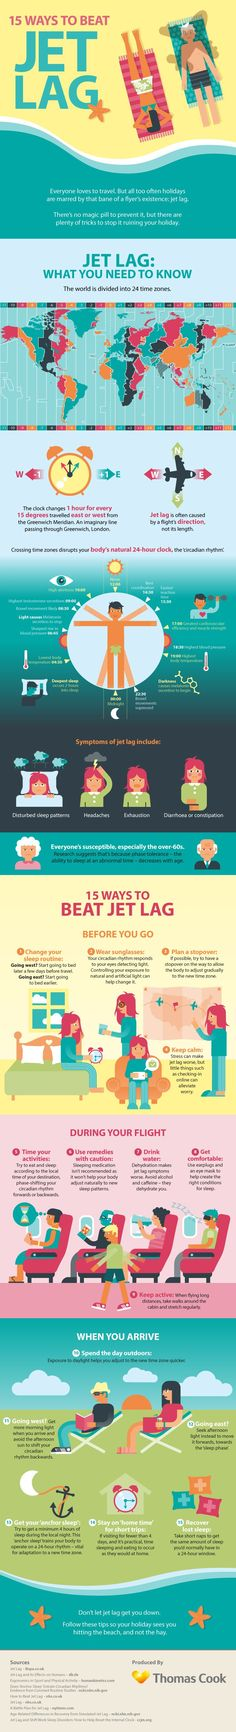 15 ways to beat jet lag (here's hoping they actually work!)